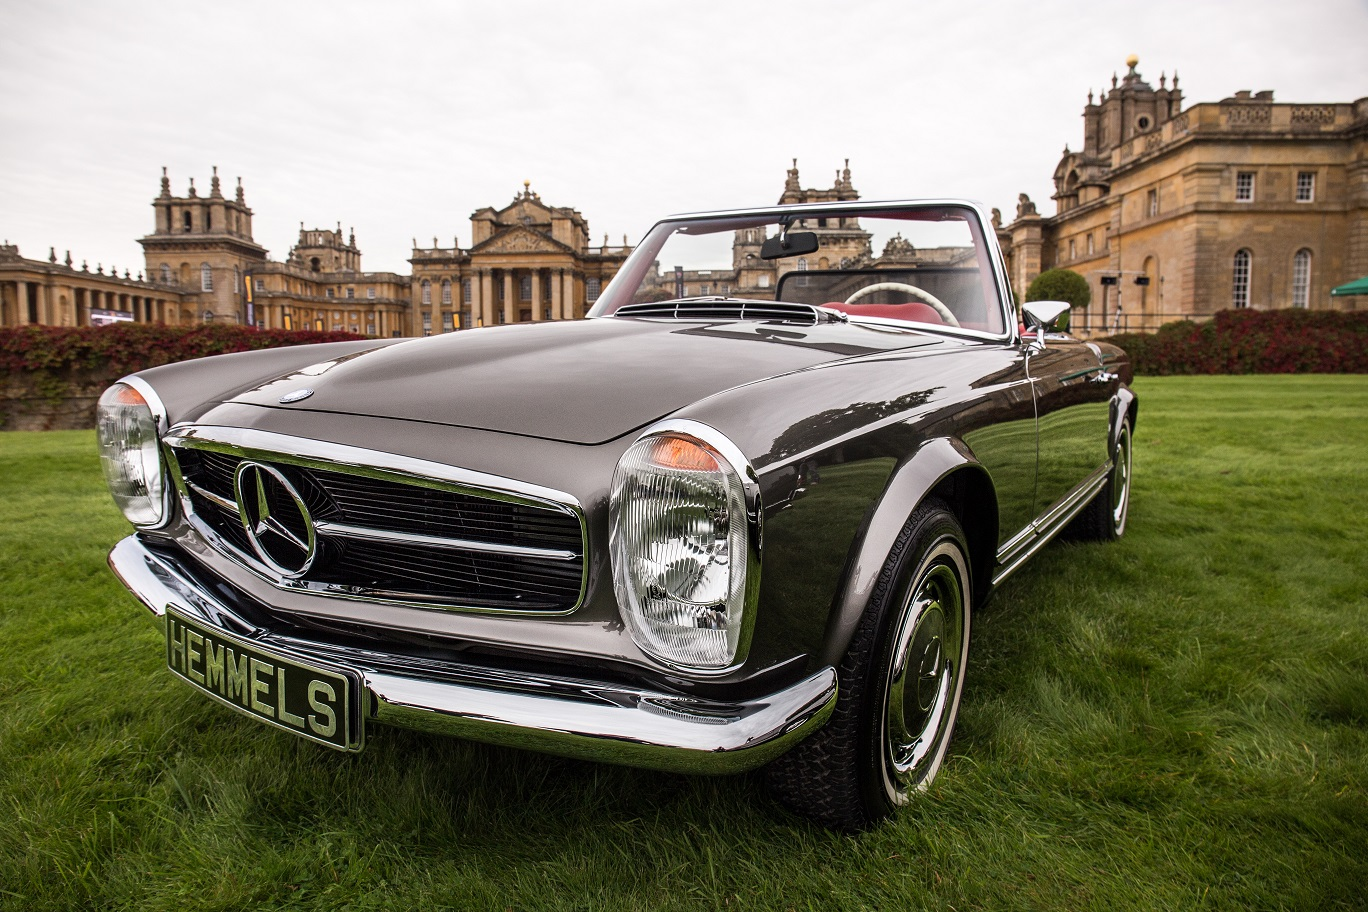 Mercedes-Benz W113 280SL Pagoda by Hemmels at Belnhem Castle